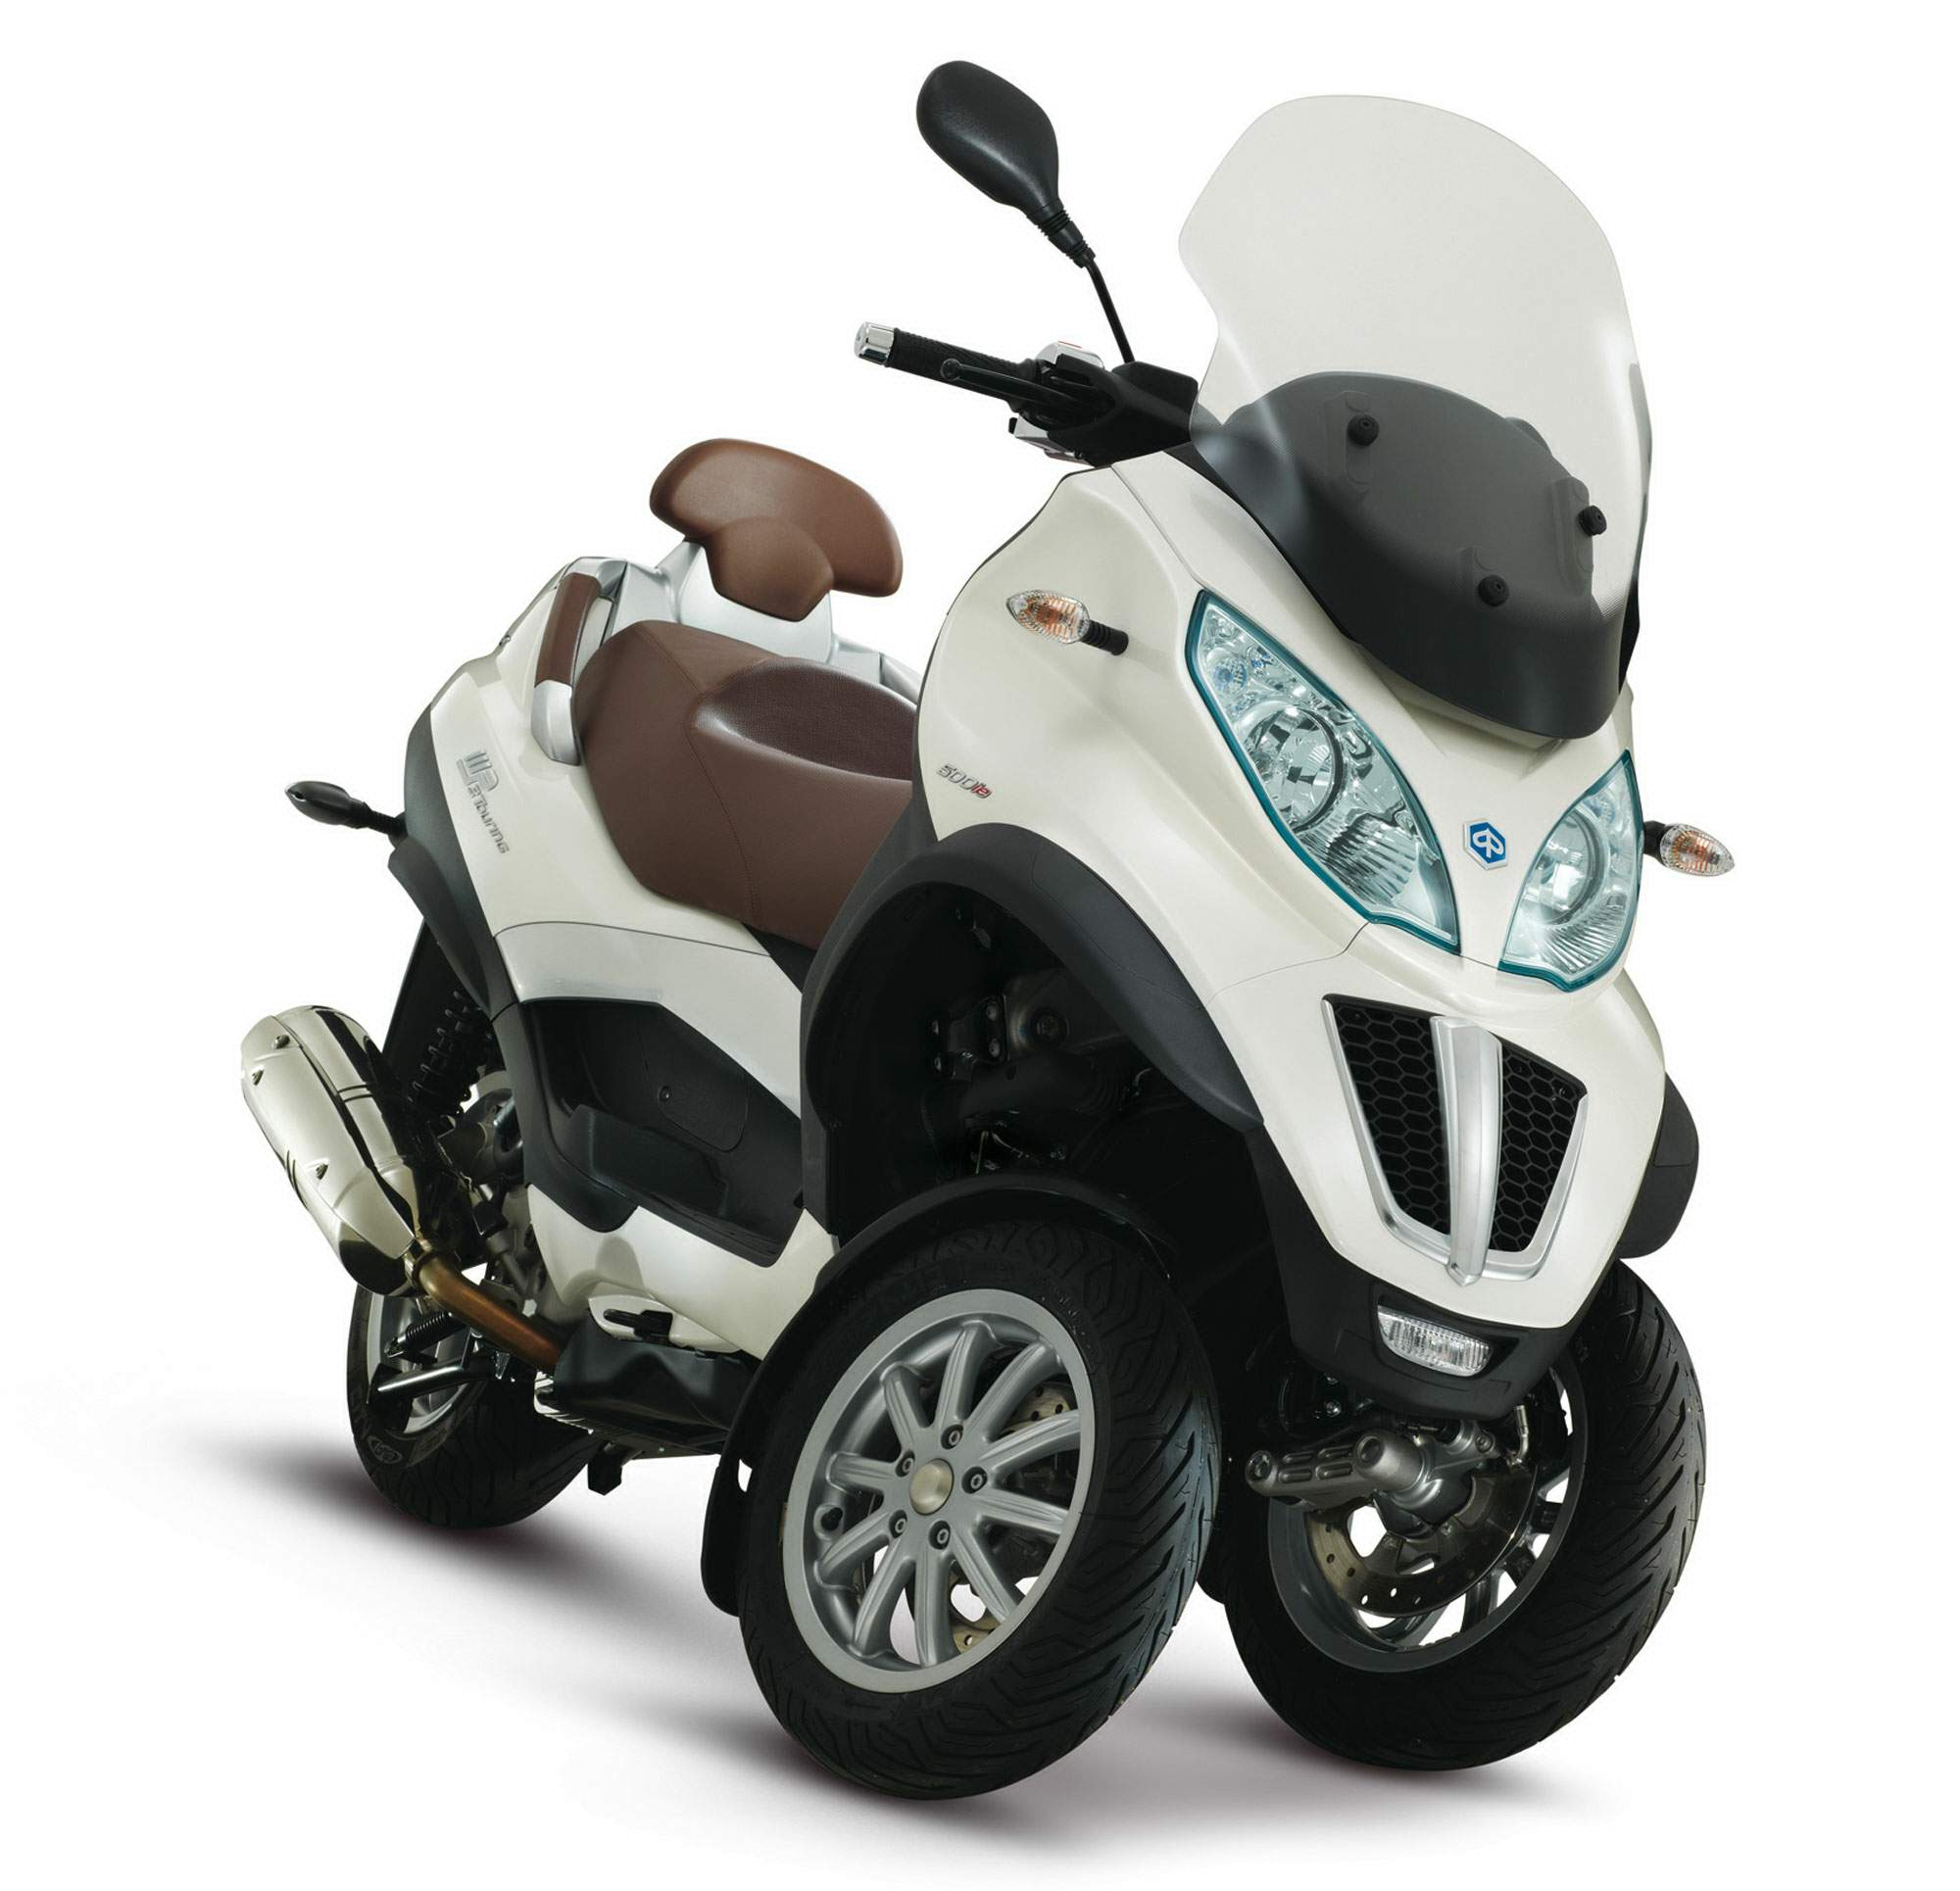 Мотоцикл Piaggio MP3 500ie Touring 2012